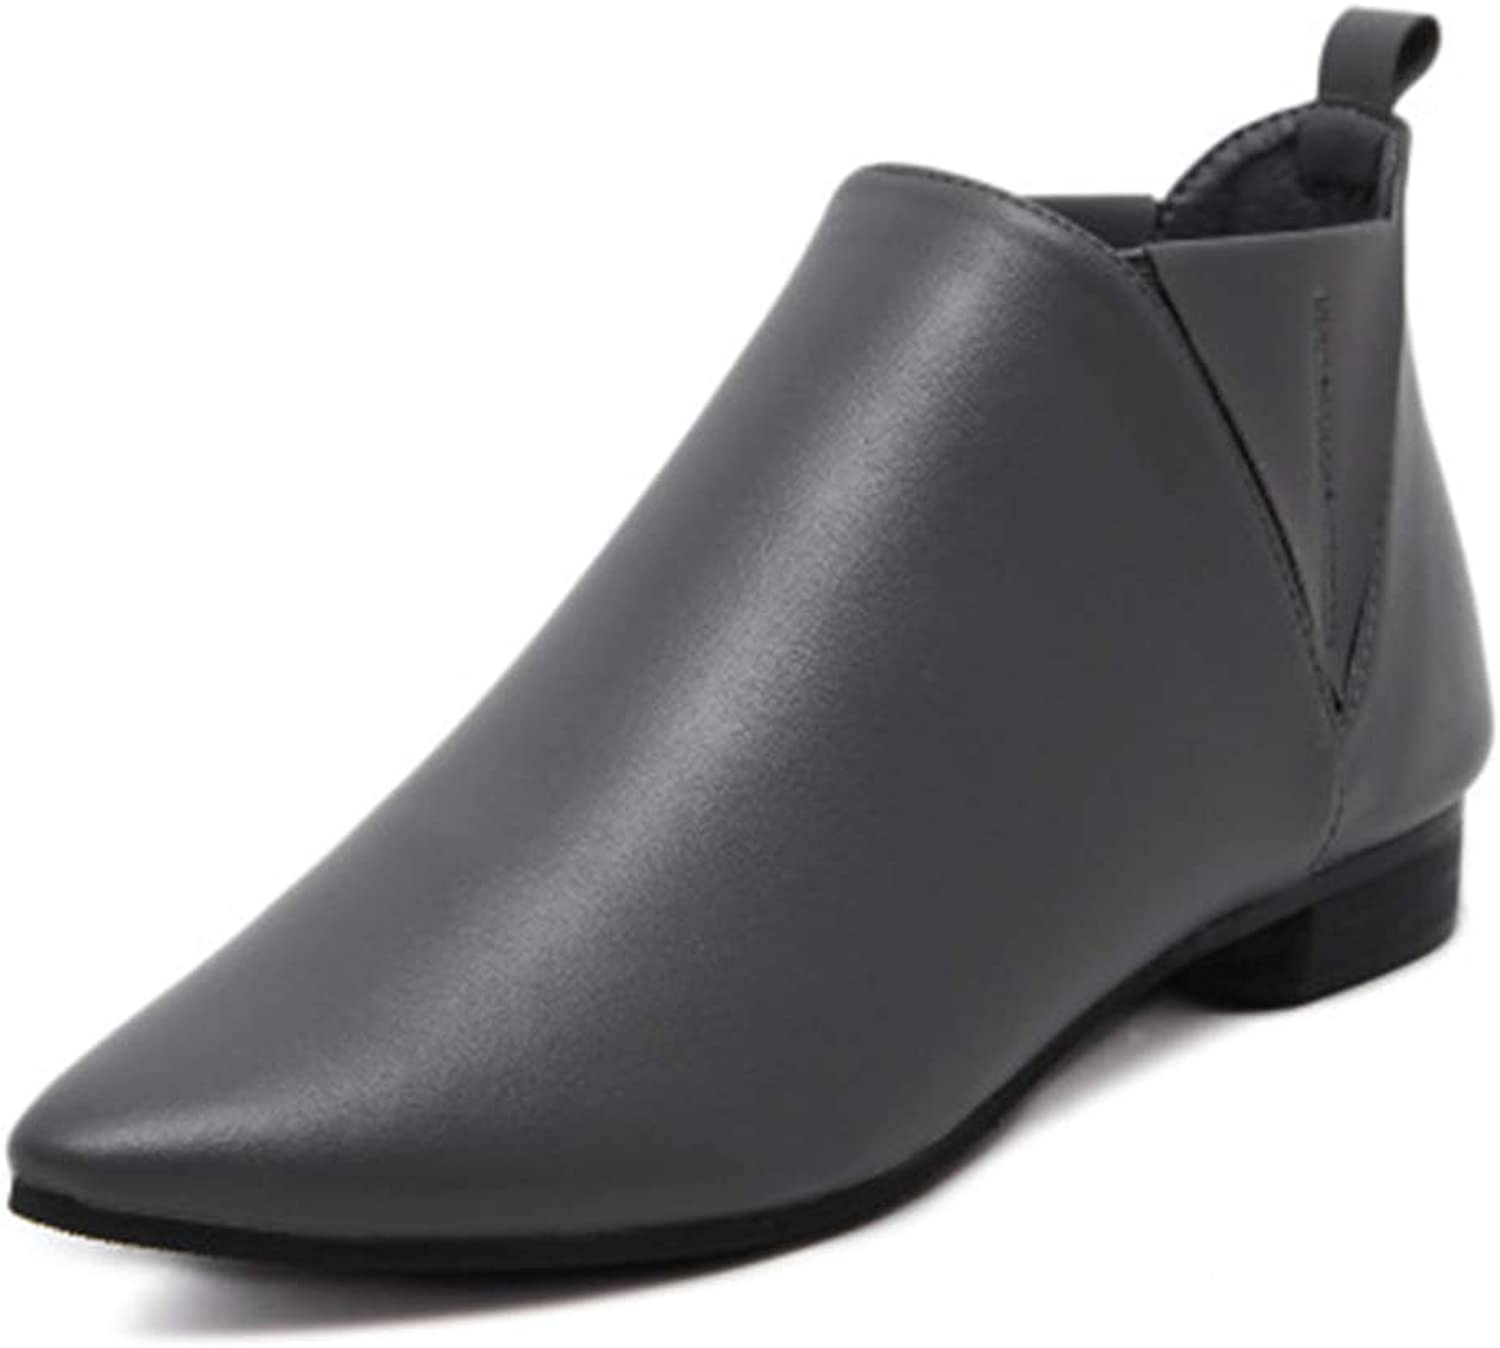 Fancyww Women's Pointed Boots Martin Flat Ankle Boots